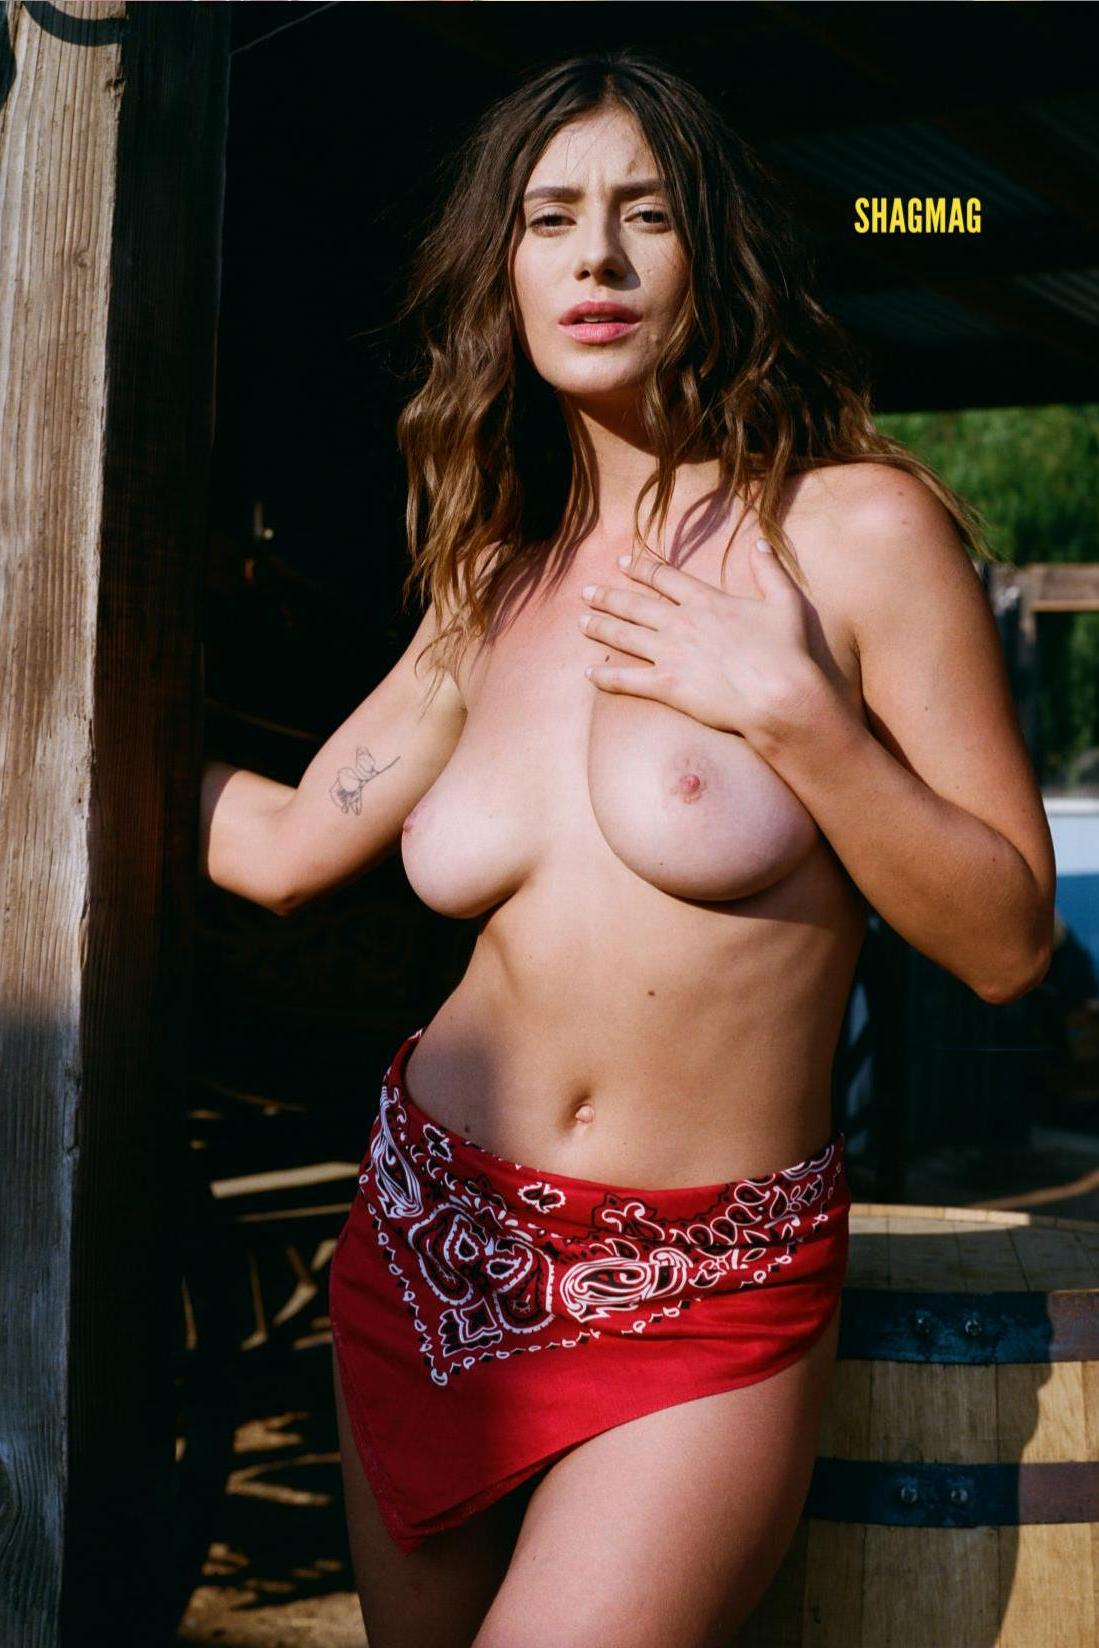 fashion model topless in adult magazine pose 1